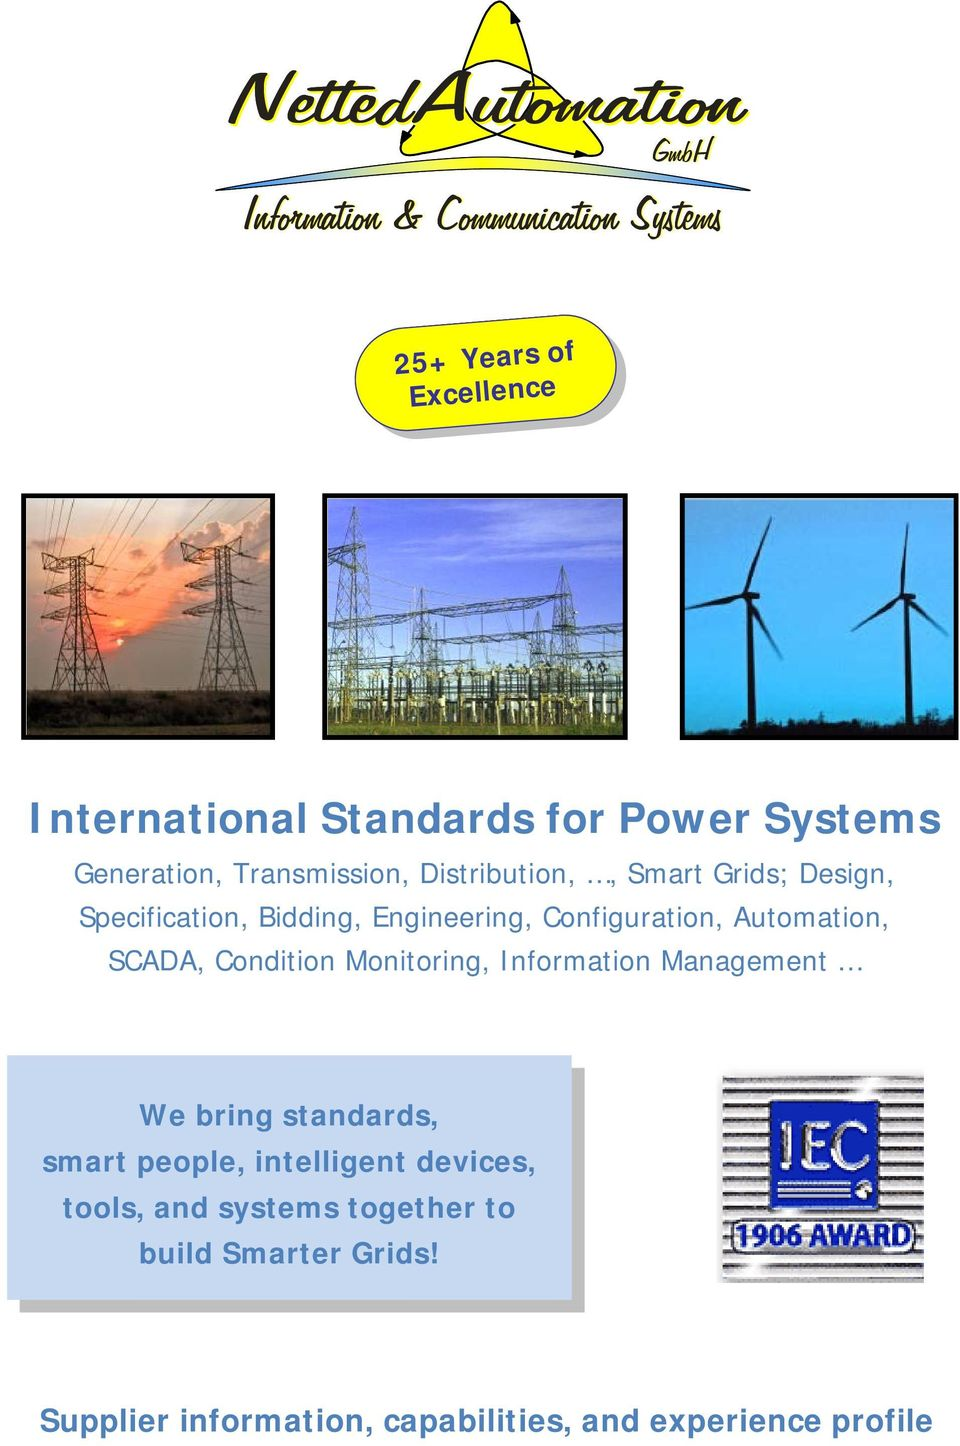 Configuration, Automation, SCADA, Condition Monitoring, Information Management We bring standards, smart people,